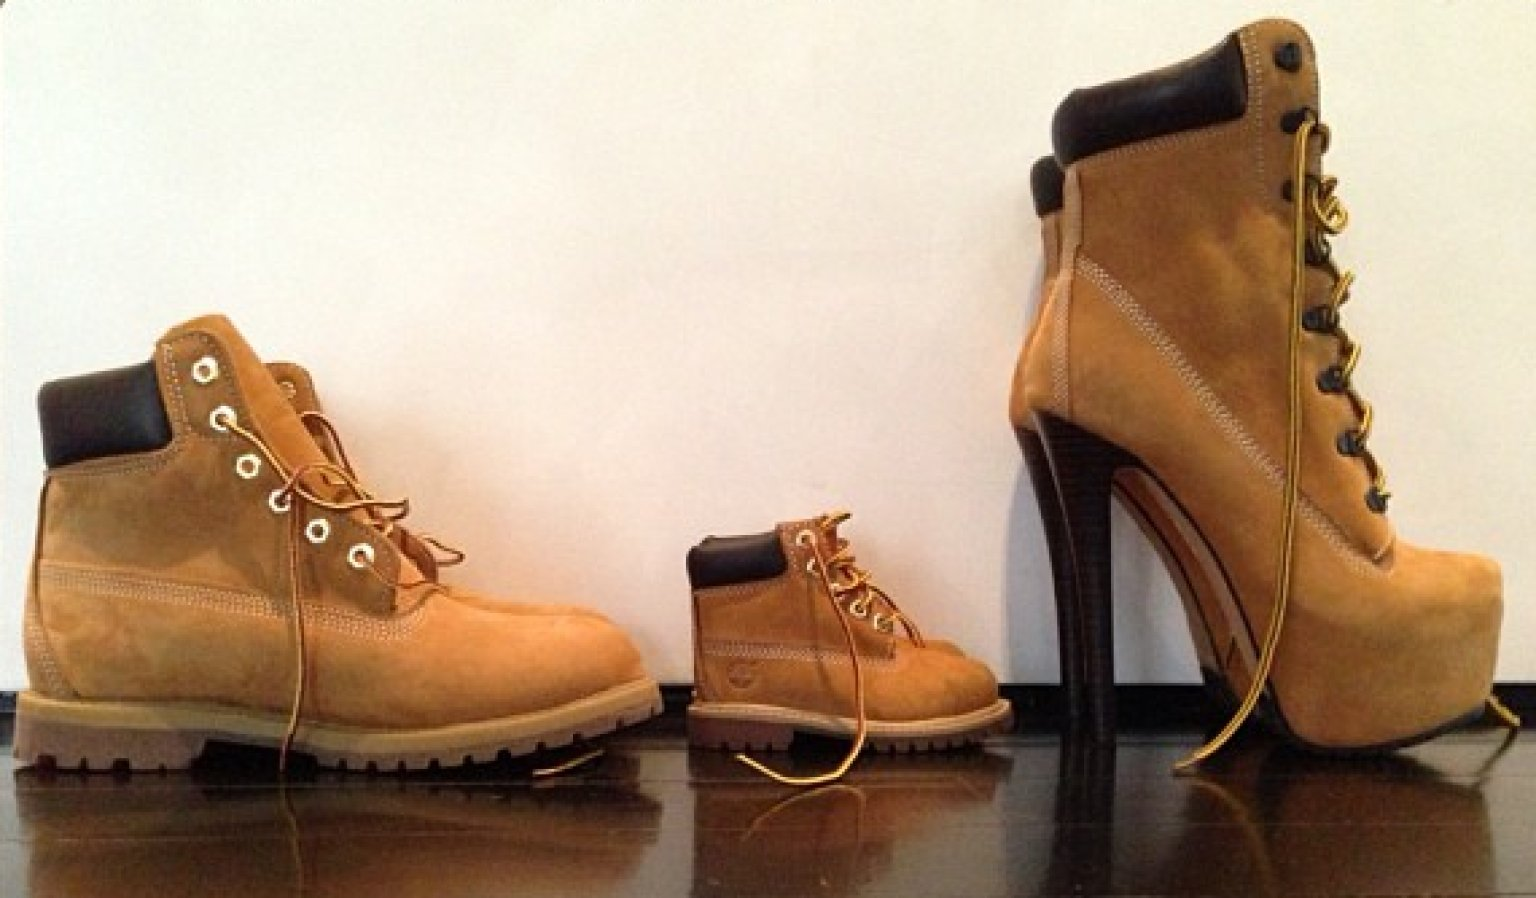 Timberland De Mujer Tumblr poker-pai-gow.es 288cfb88e14